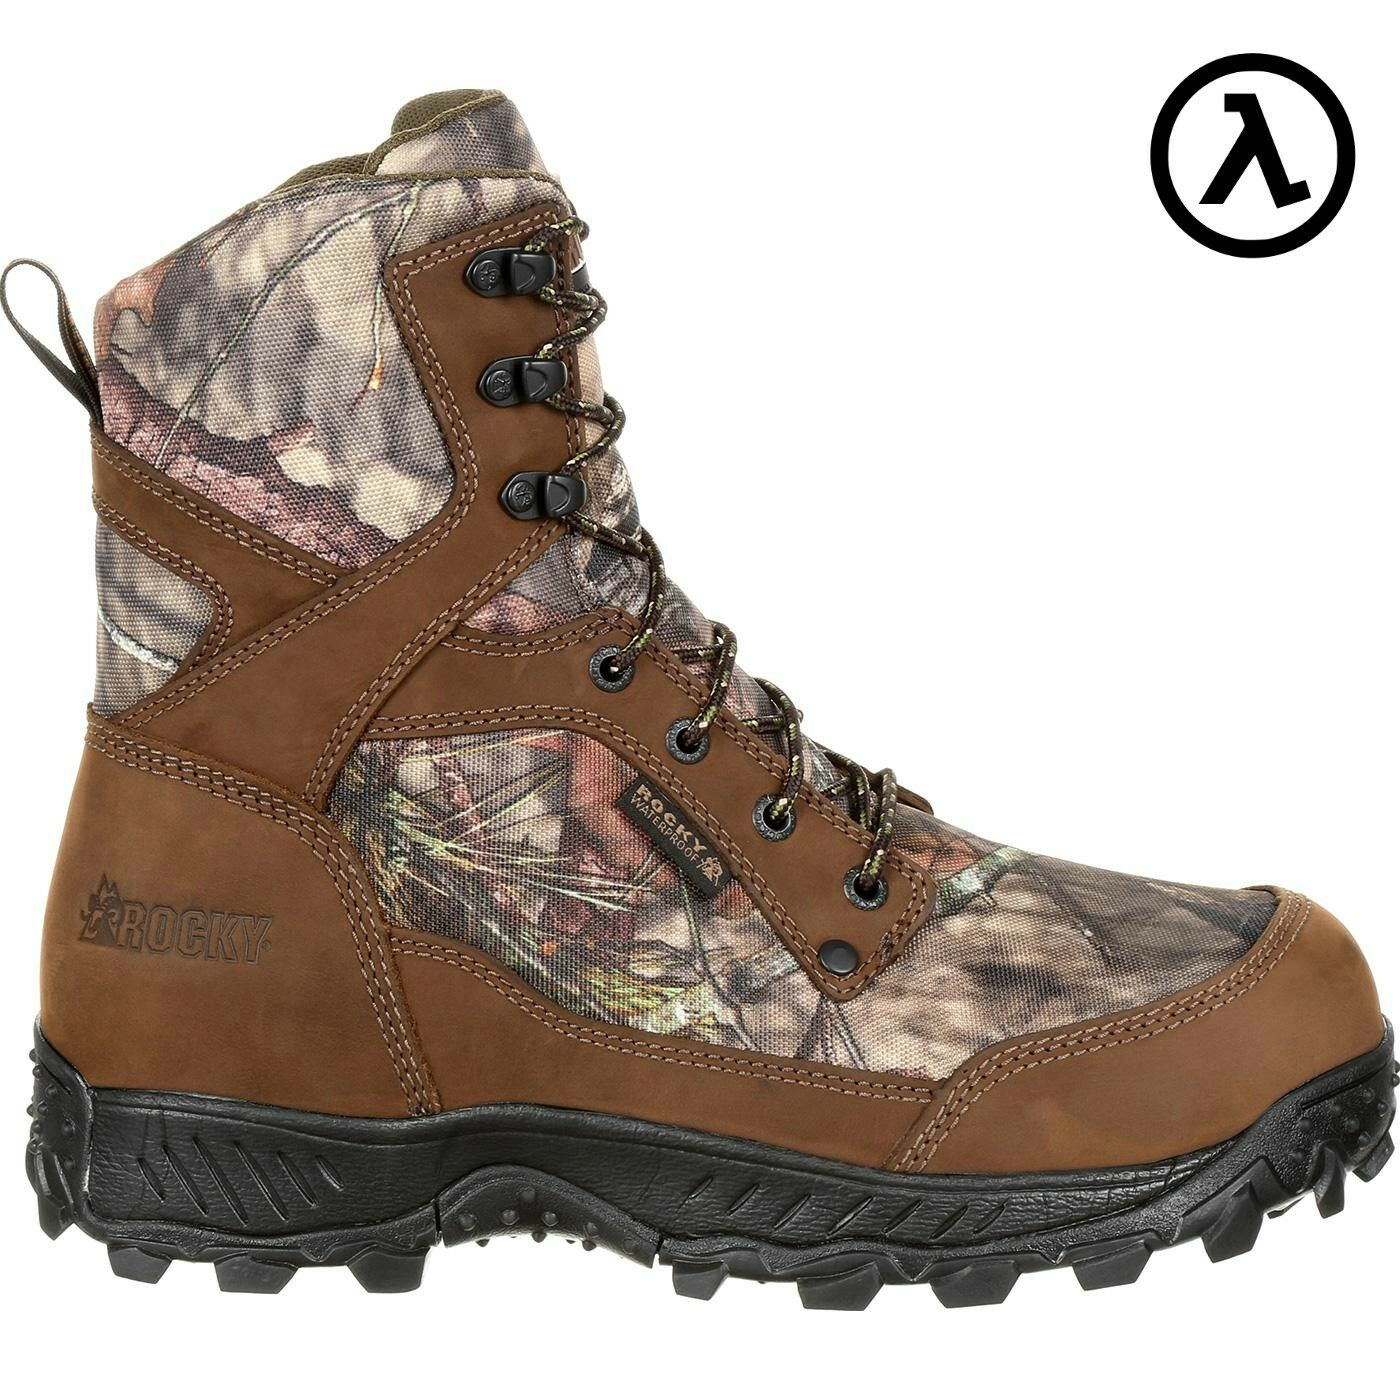 ROCKY RIDGE TOP 400G INSULATED WATERPROOF HIKER BOOTS RKS0385 * ALL SIZES - NEW